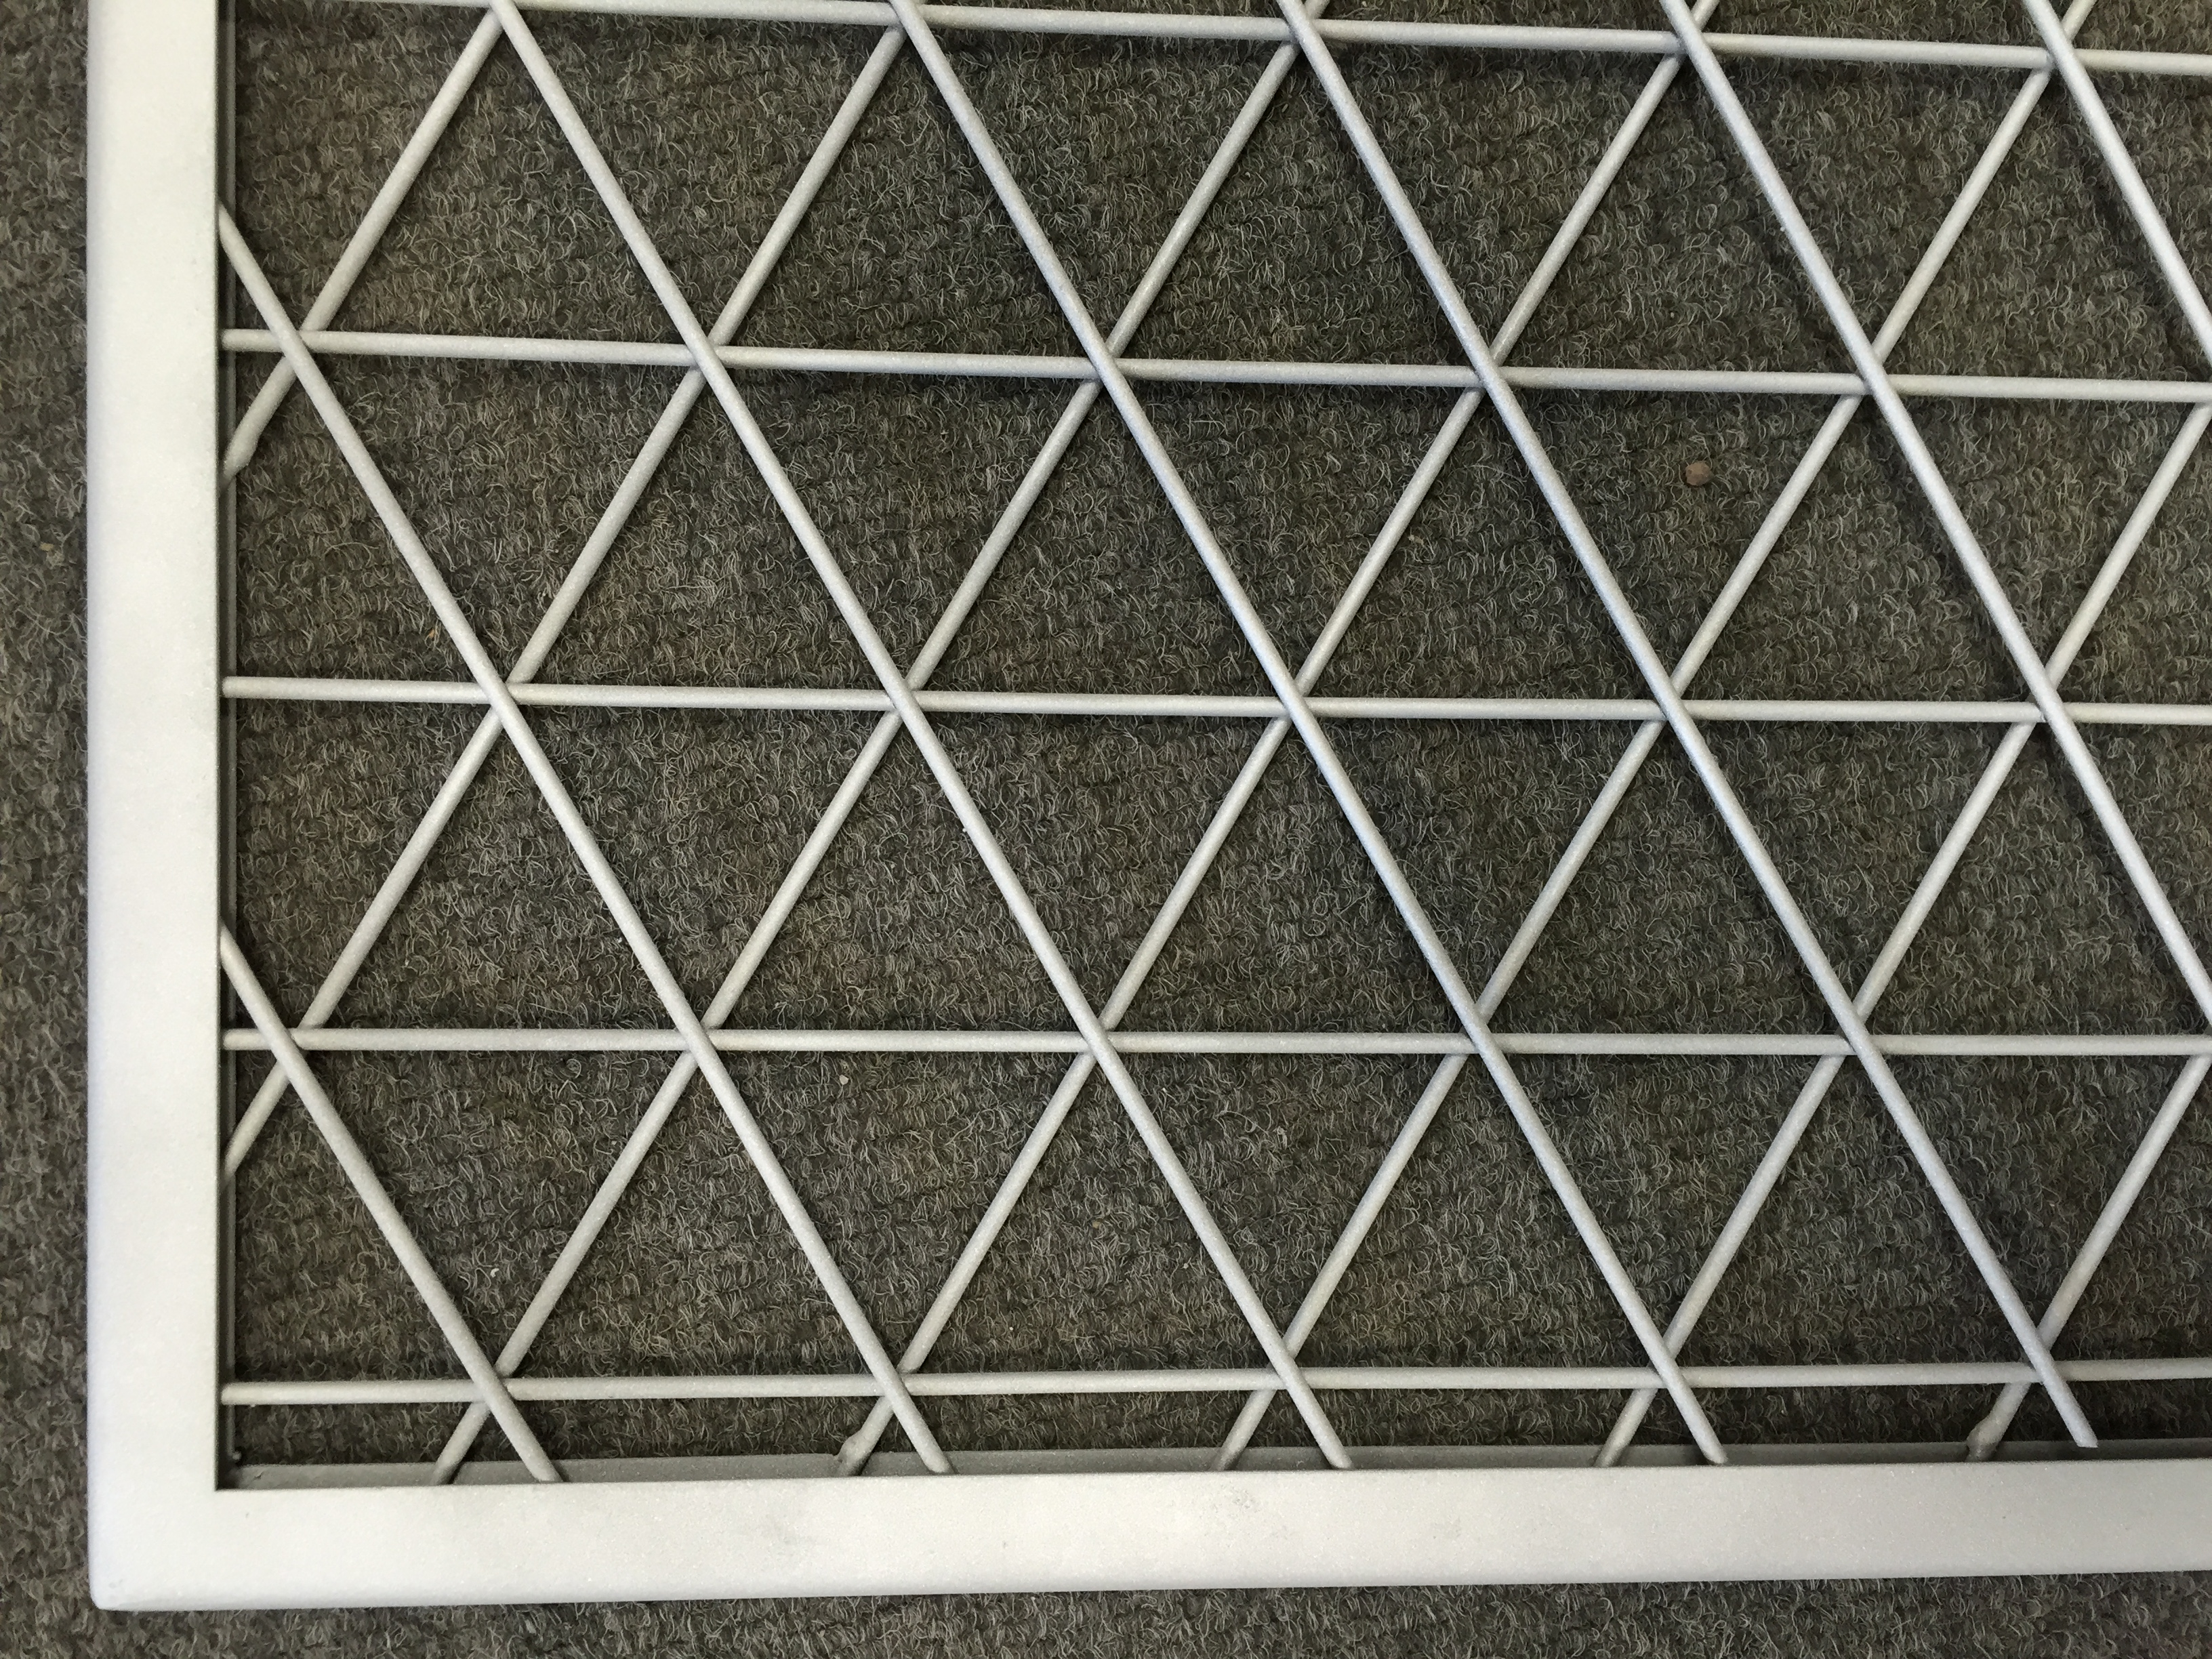 Triangular mesh